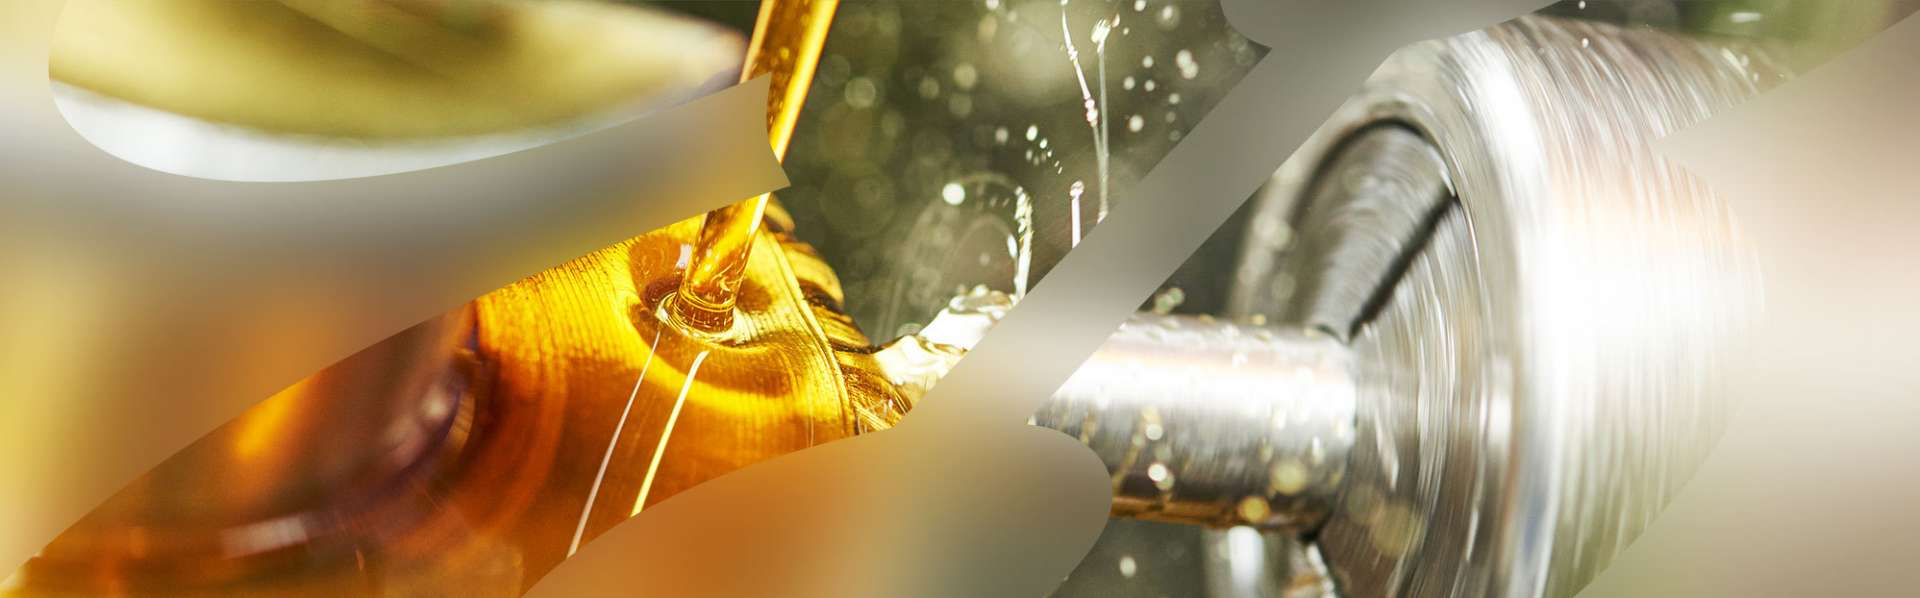 Fuel & Lubricant Industry - Antioxidants, Additives & Chemistry